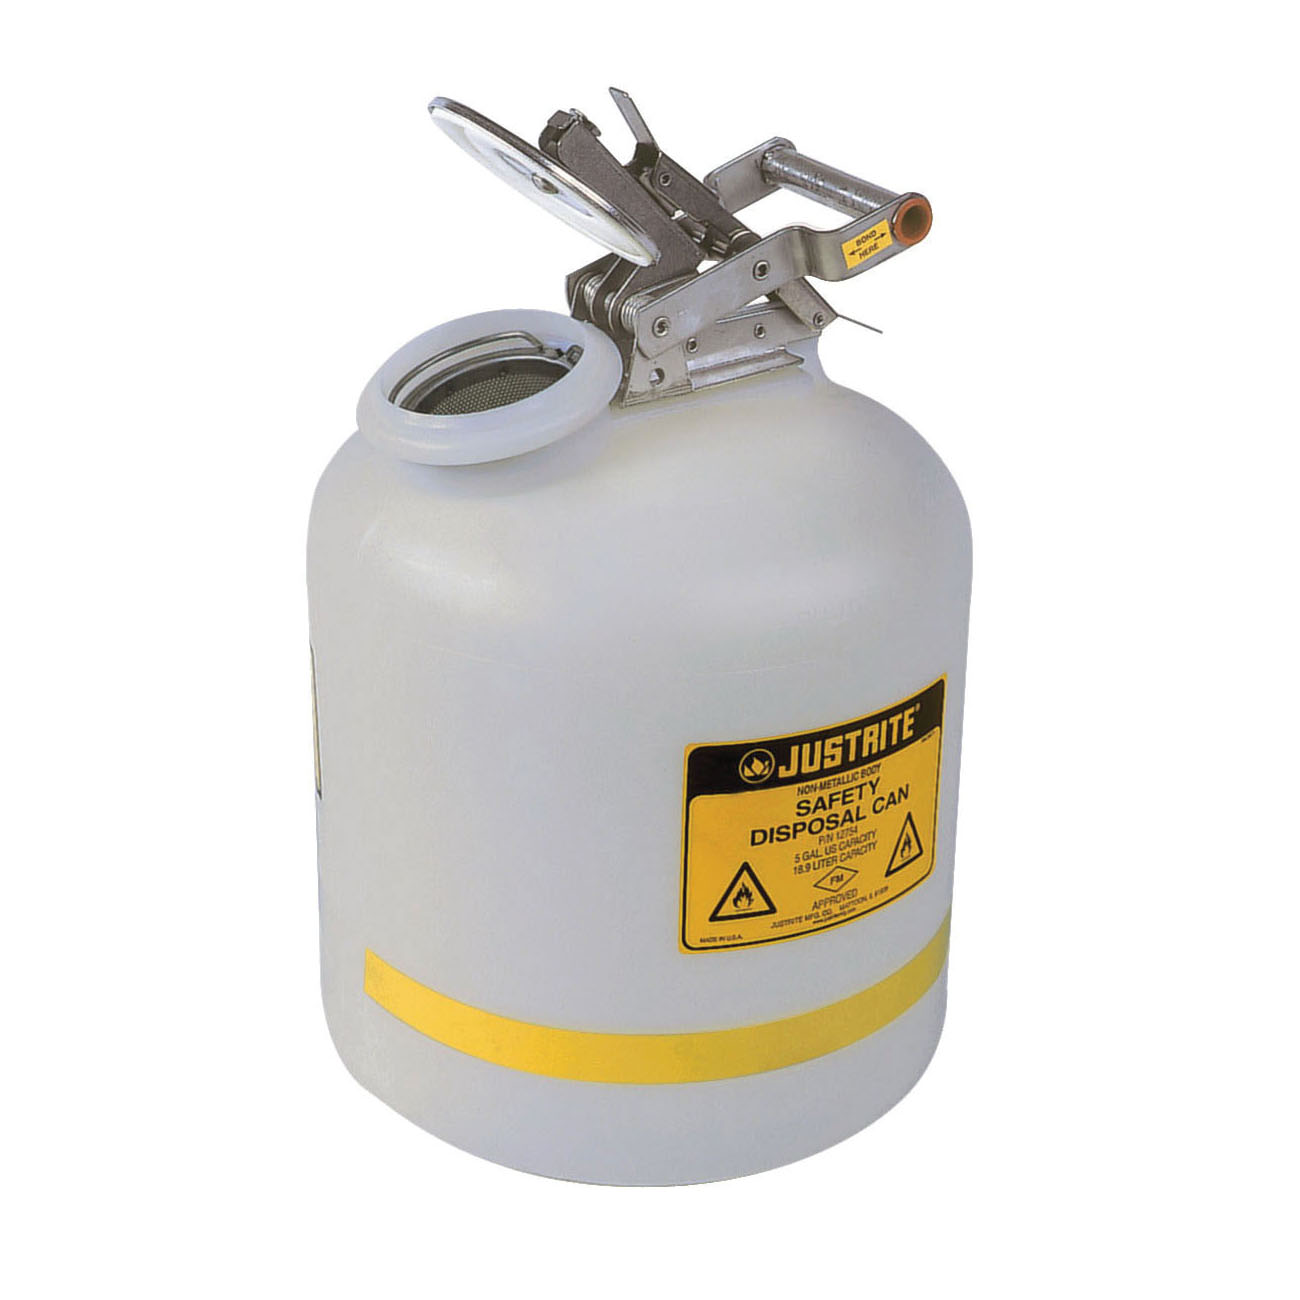 Justrite® 12754 Liquid Disposal Safety Can With Stainless Steel Hardware, 5 gal Capacity, 12 in Dia, 20 in H, Polyethylene, White, FM Approved, OSHA Approved, NFPA 30